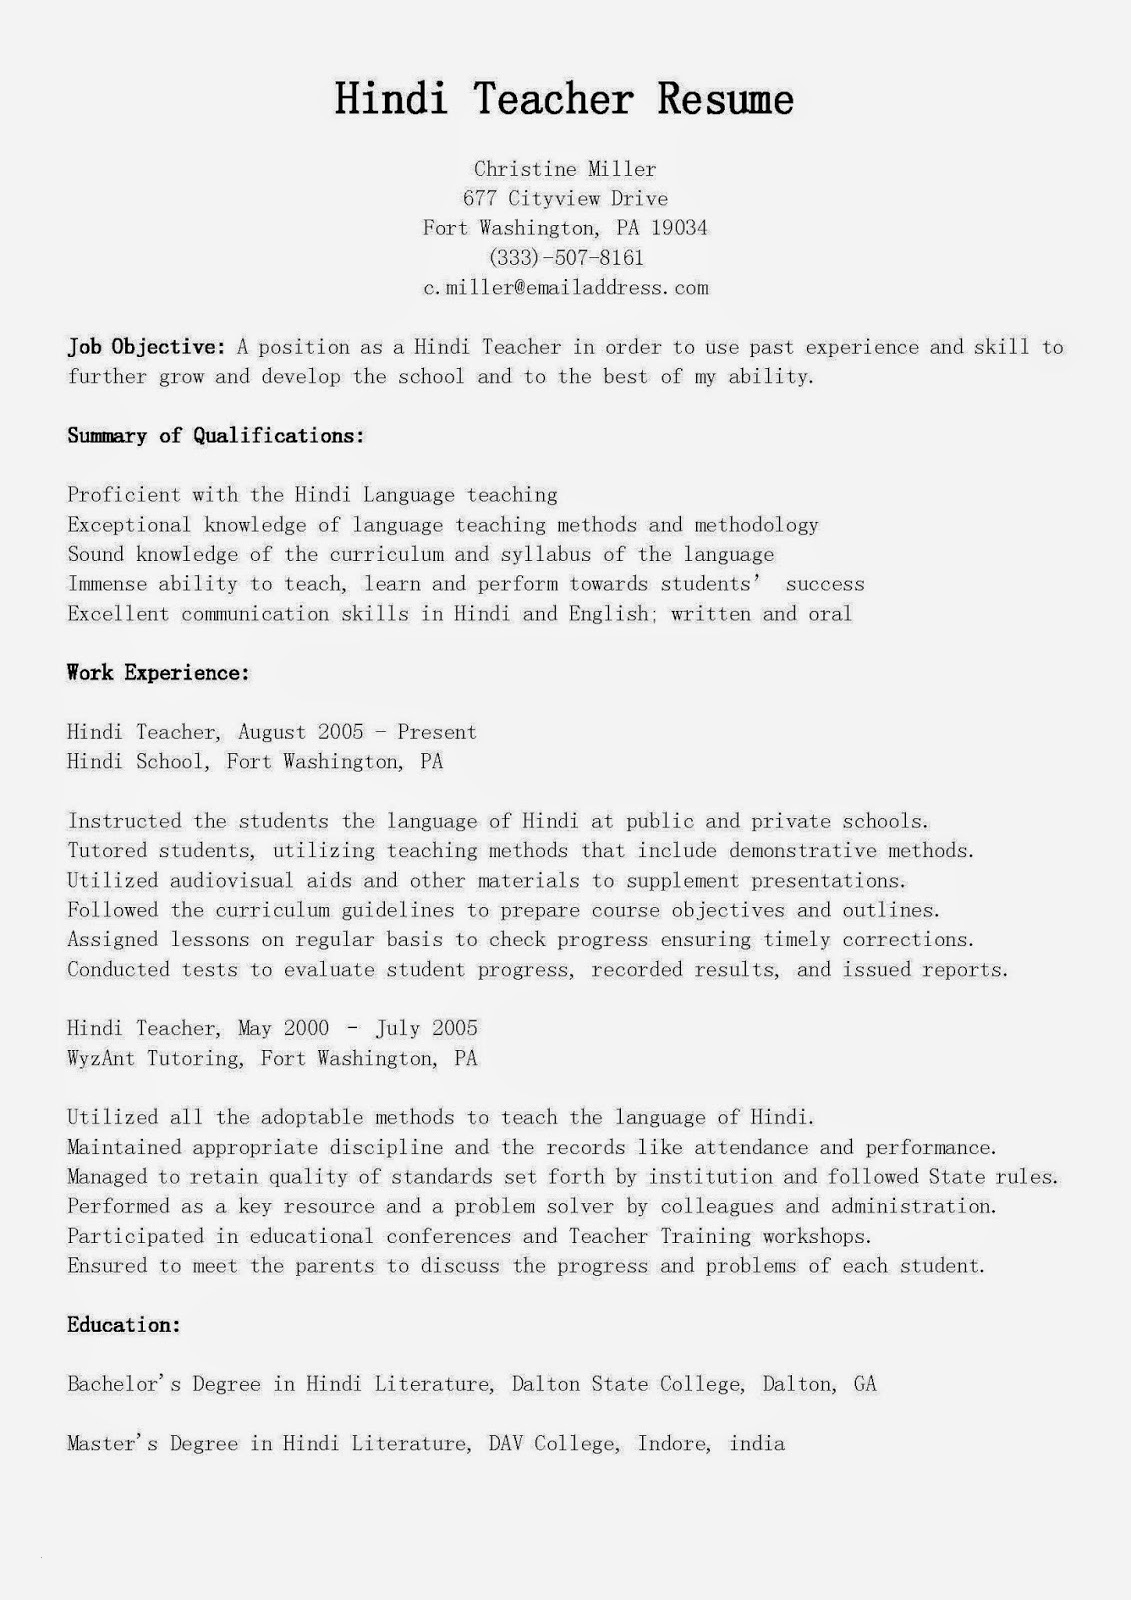 Ross School Of Business Resume Template - Math Tutor Resume Best Math Tutor Resume Sample Unique Ghost